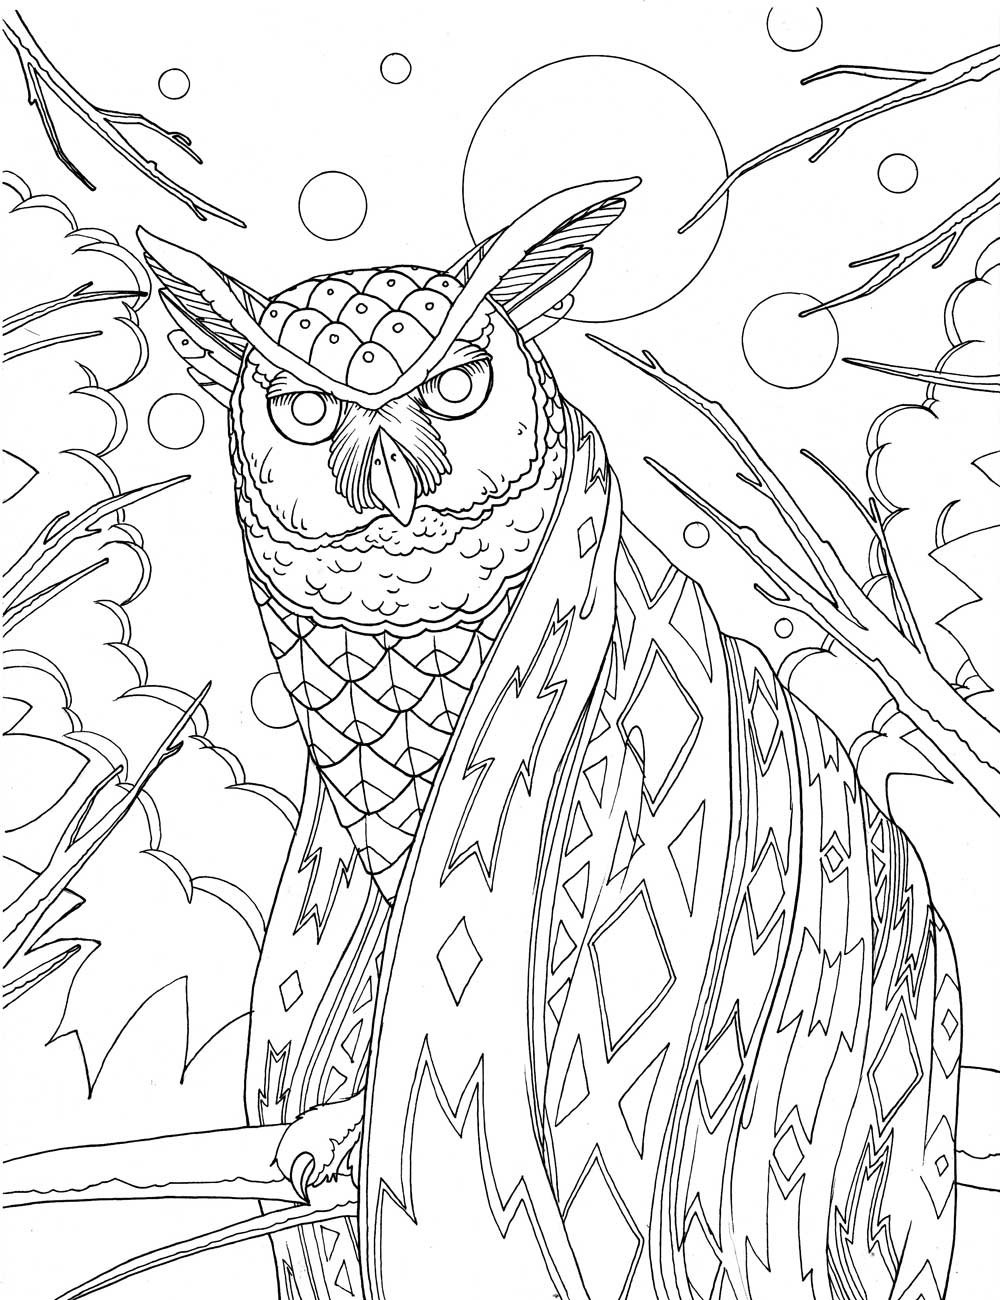 1000x1300 Great Smoky Mountains National Park Coloring Page Animals Nature